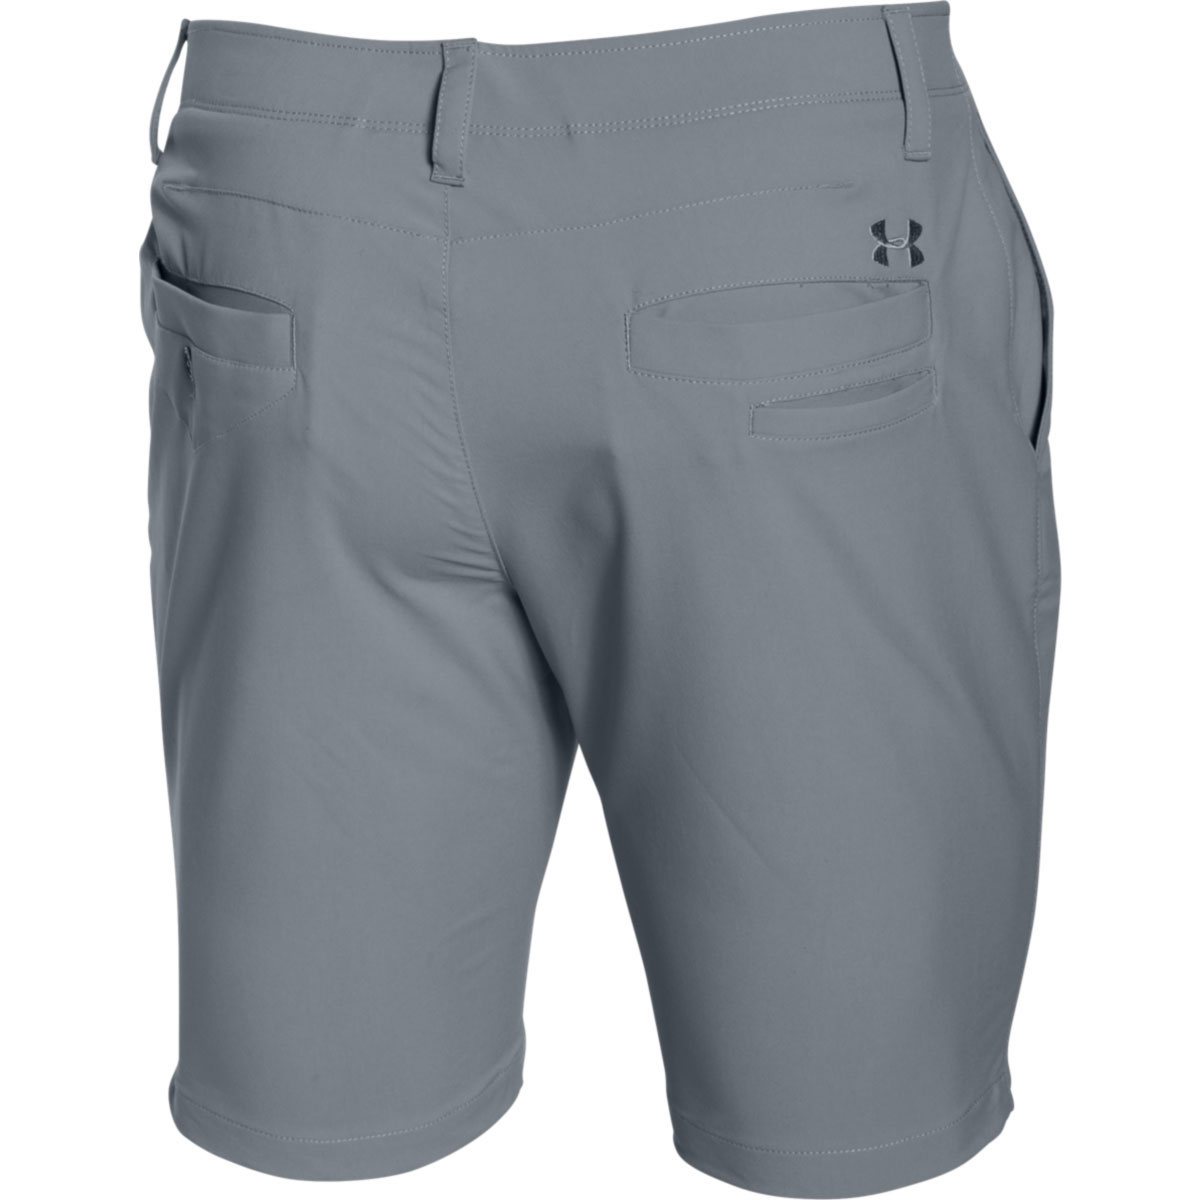 Under-Armour-Mens-UA-Match-Play-Taper-Tech-Performance-Golf-Shorts-29-OFF-RRP Indexbild 21